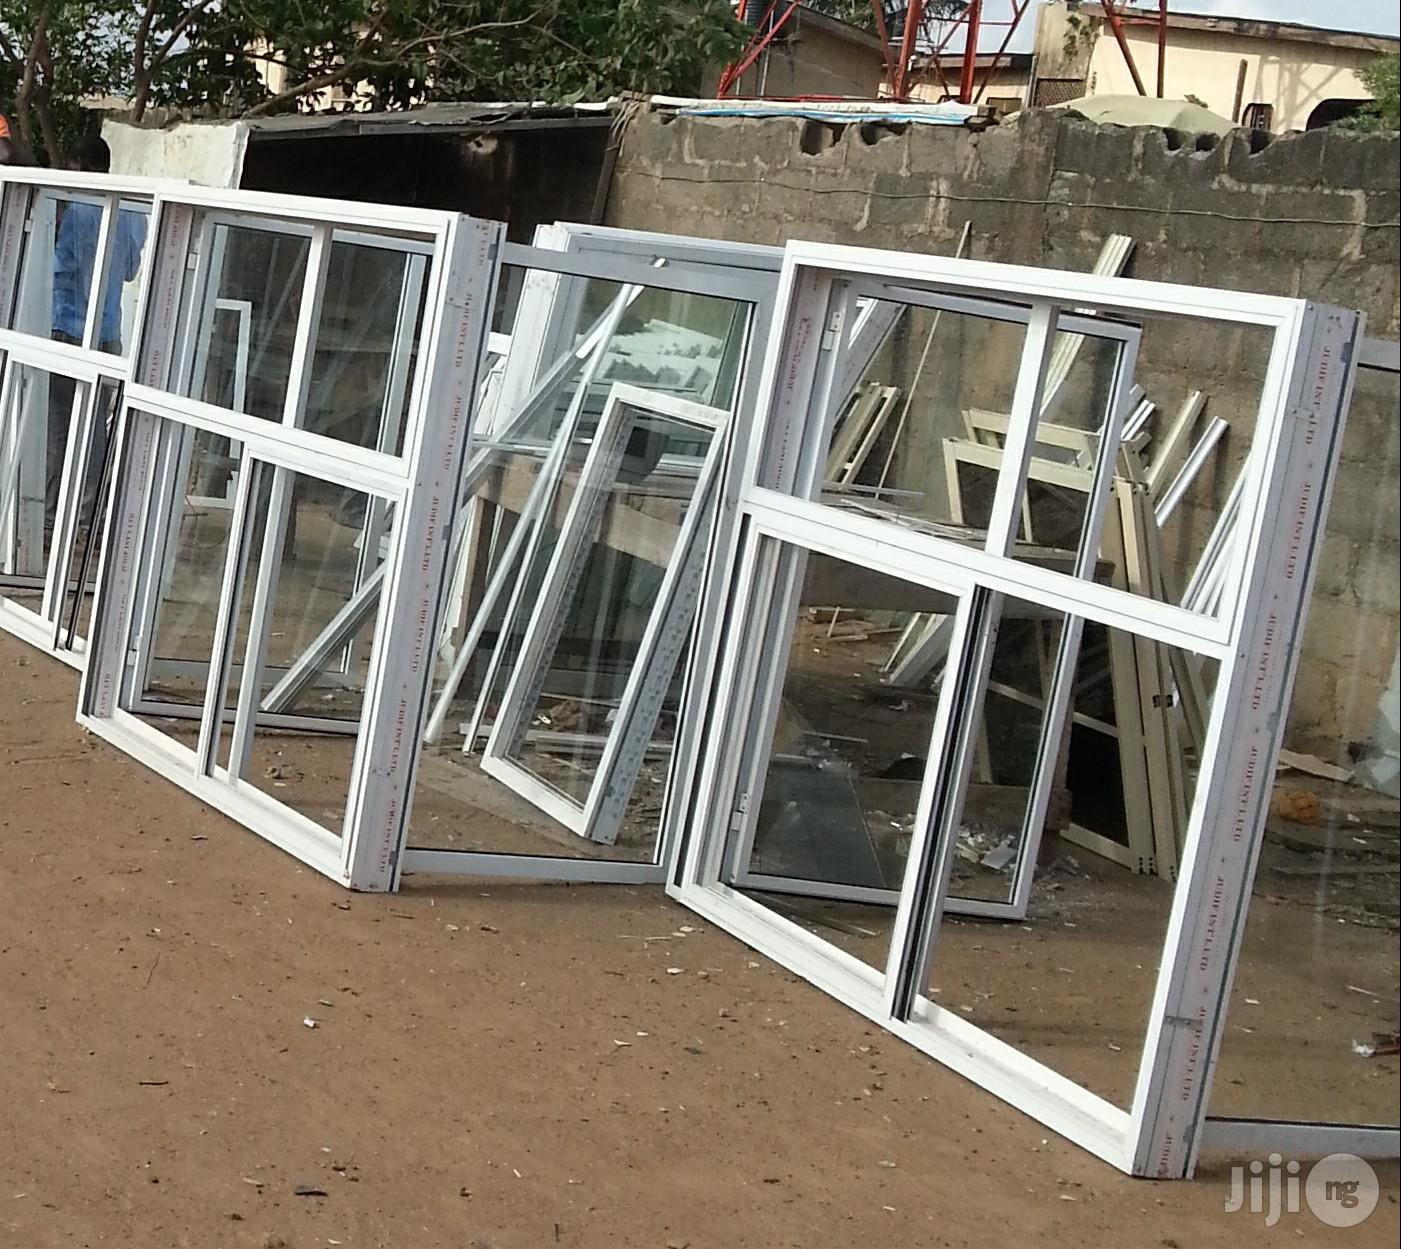 Sliding Window With Net | Building & Trades Services for sale in Alimosho, Lagos State, Nigeria